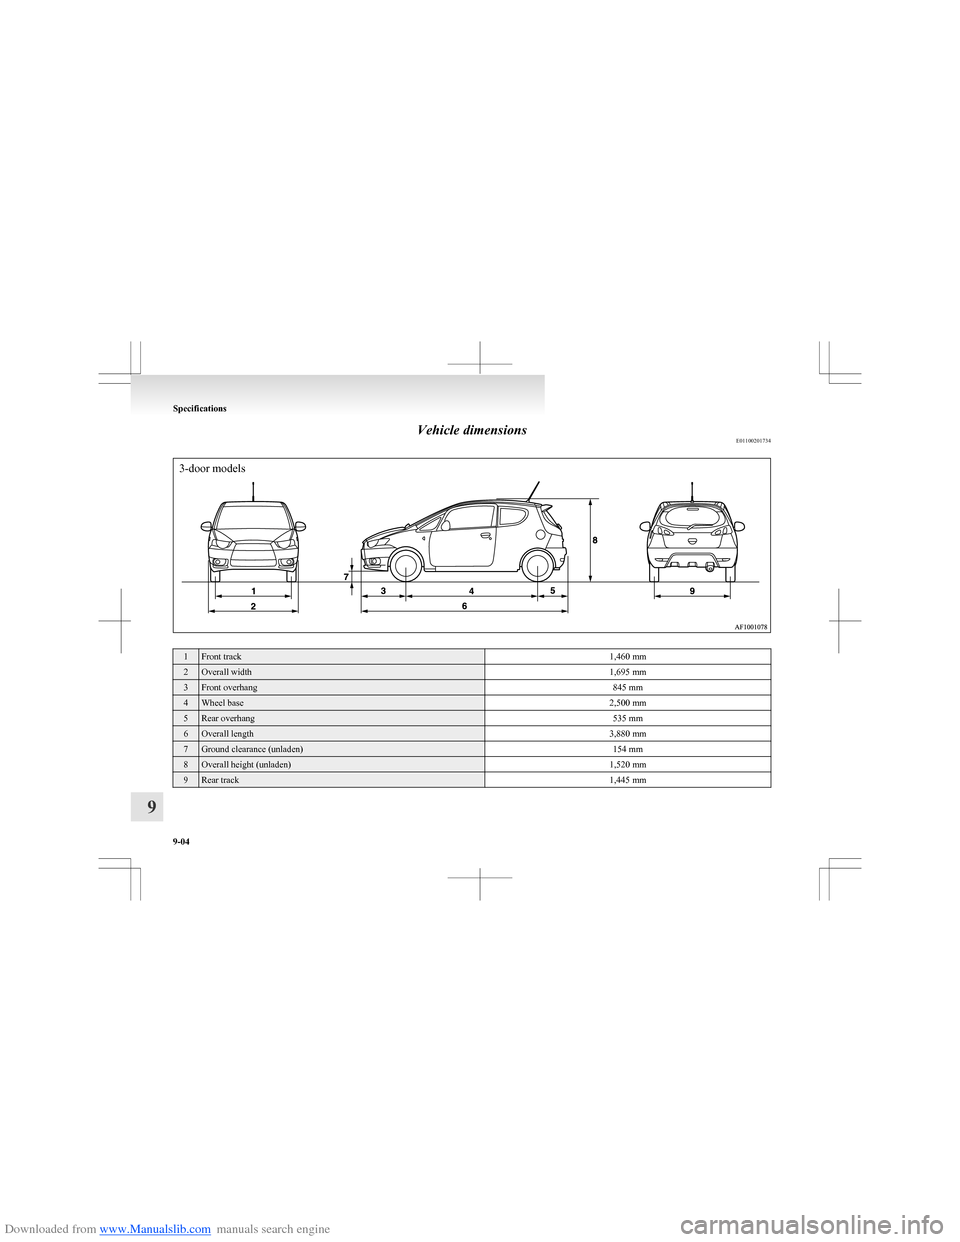 MITSUBISHI COLT 2009 10.G Owners Manual (273 Pages), Page